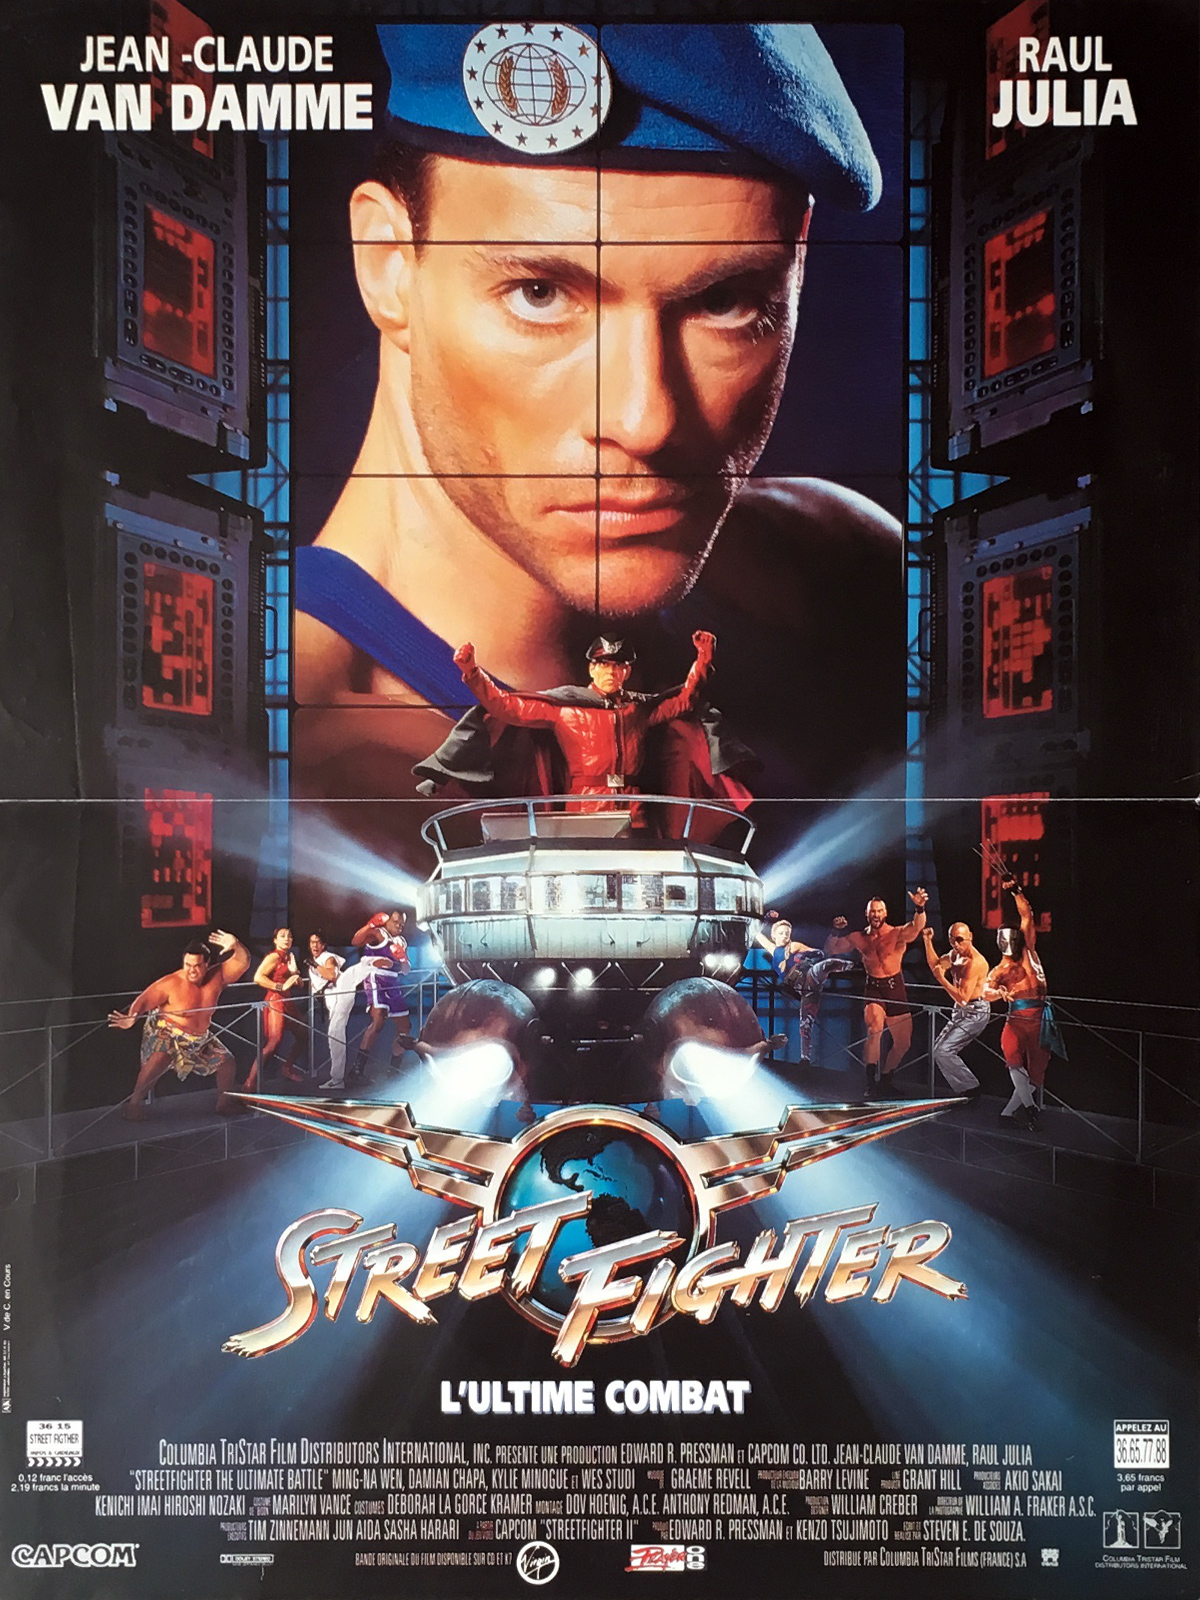 street-fighter-movie-poster-15x21-in-1994-steven-e-de-souza-jean-claude-van-damme